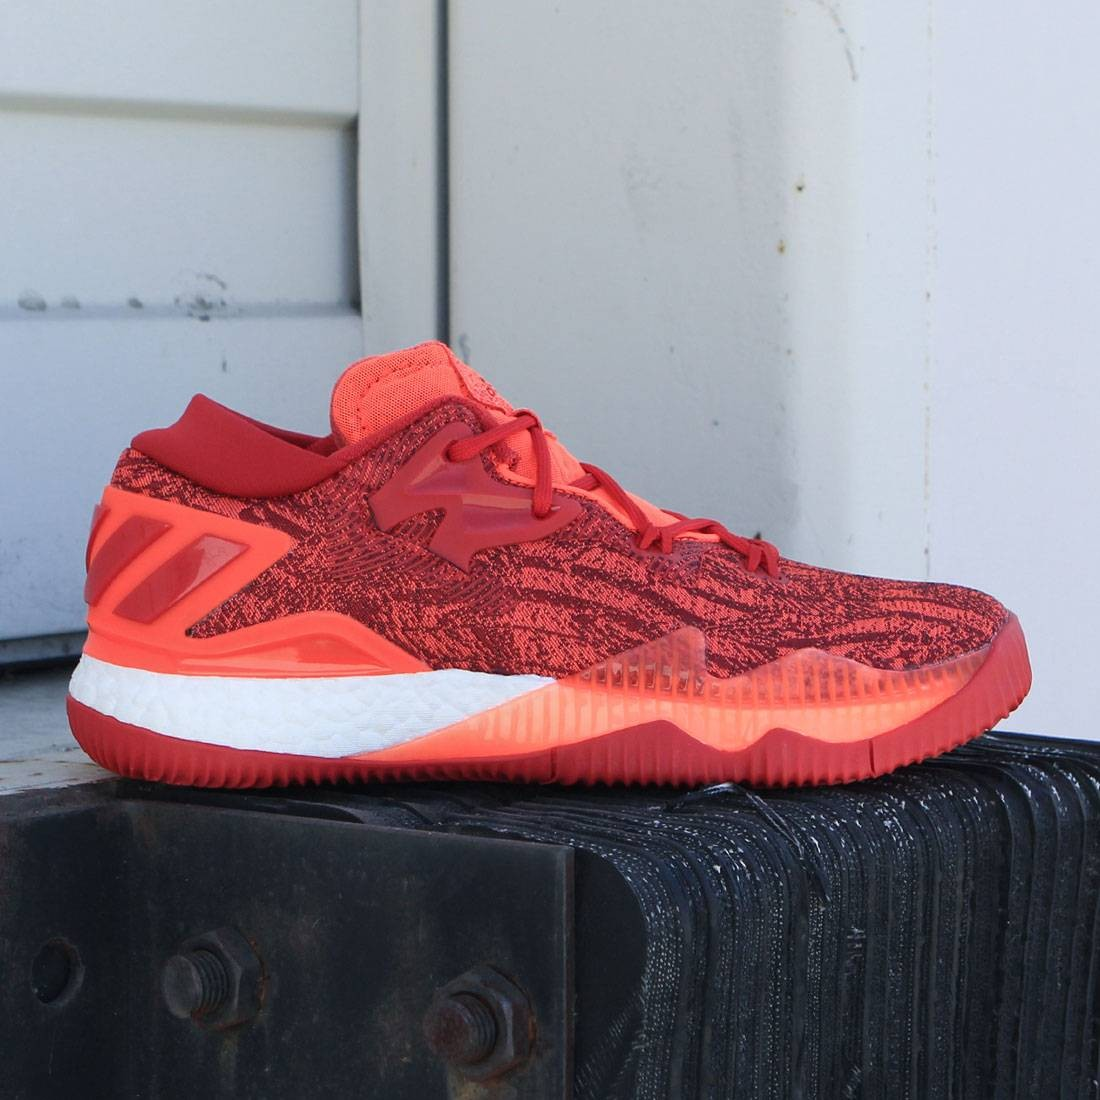 adidas Crazylight Boost Low 2016 Solar Red | HYPEBEAST